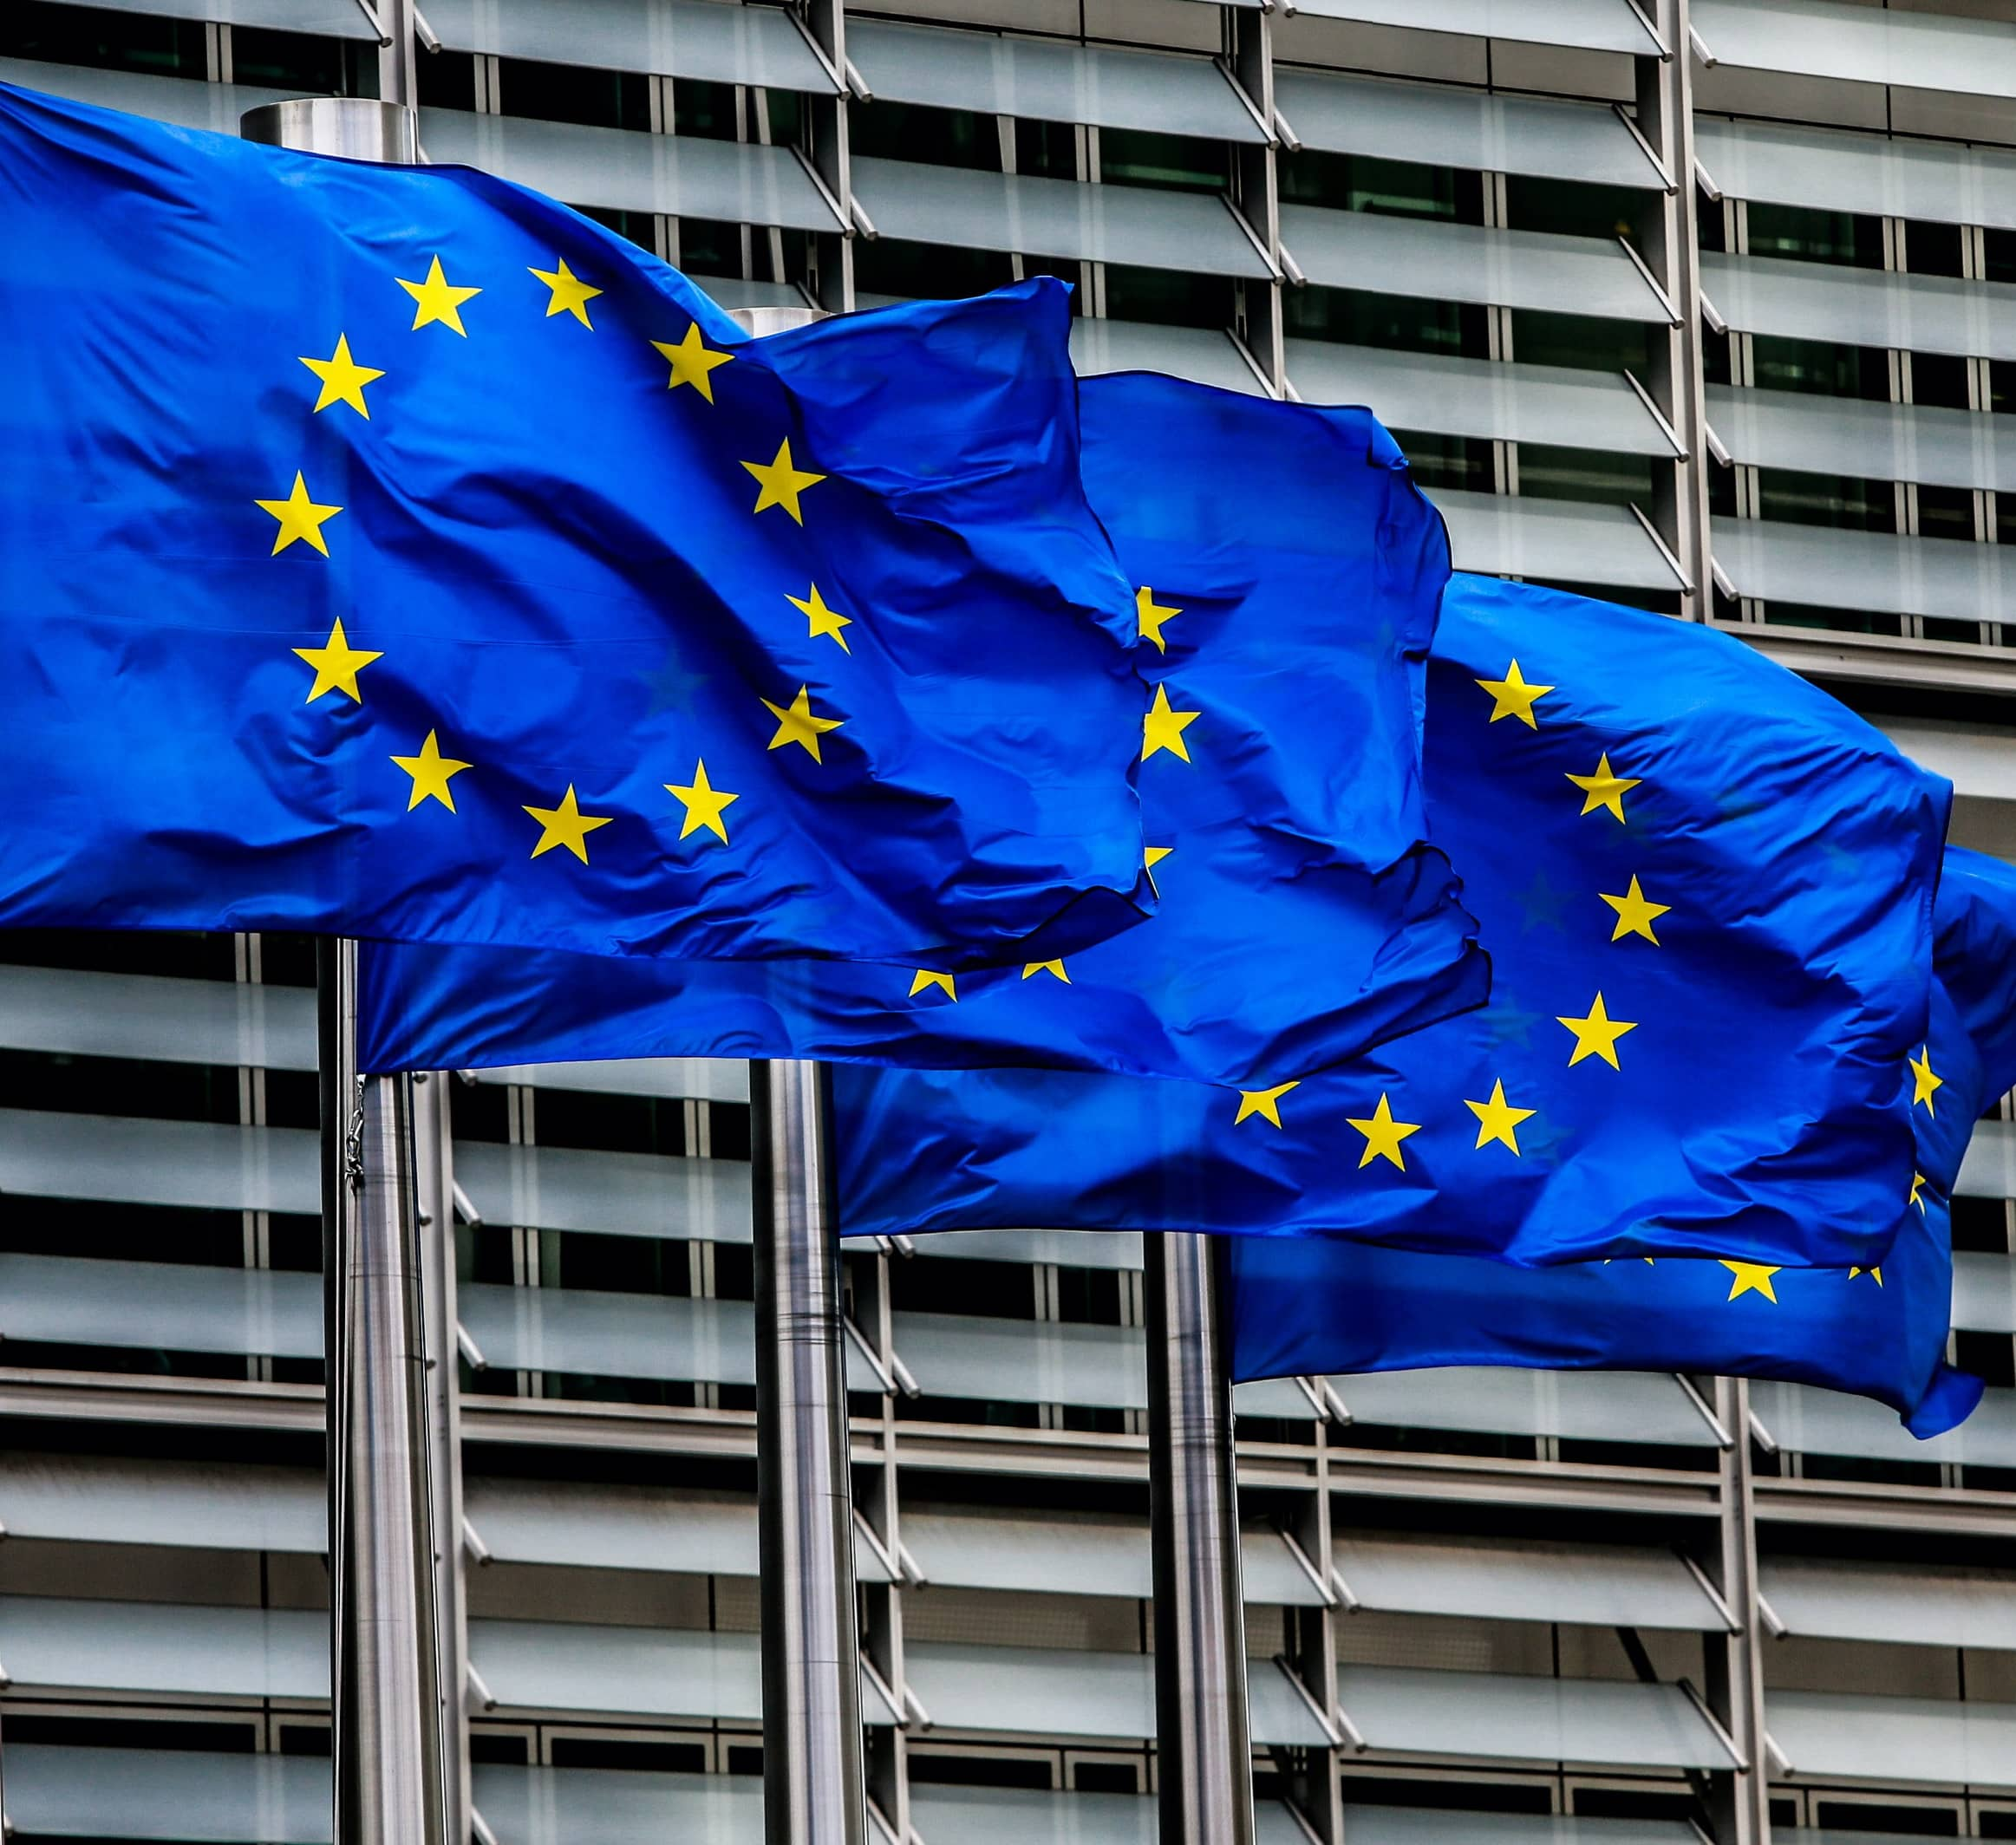 EU COURT: NO NEED TO REVEAL IP ADDRESSES IN UPLOADING CASES